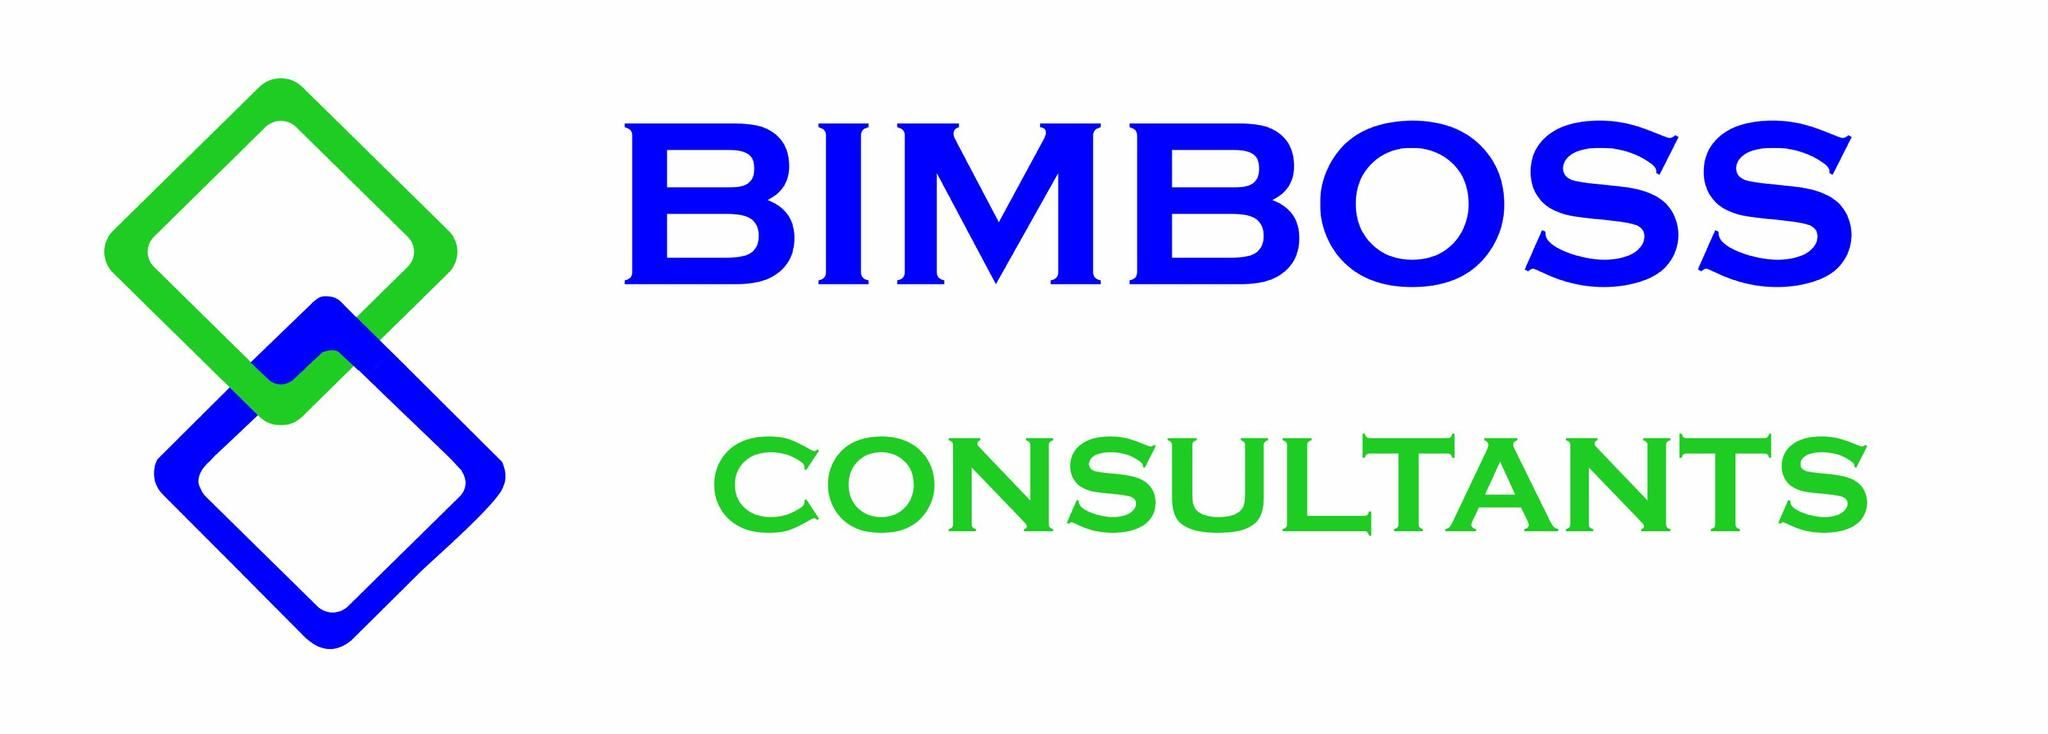 BimBoss Consultants